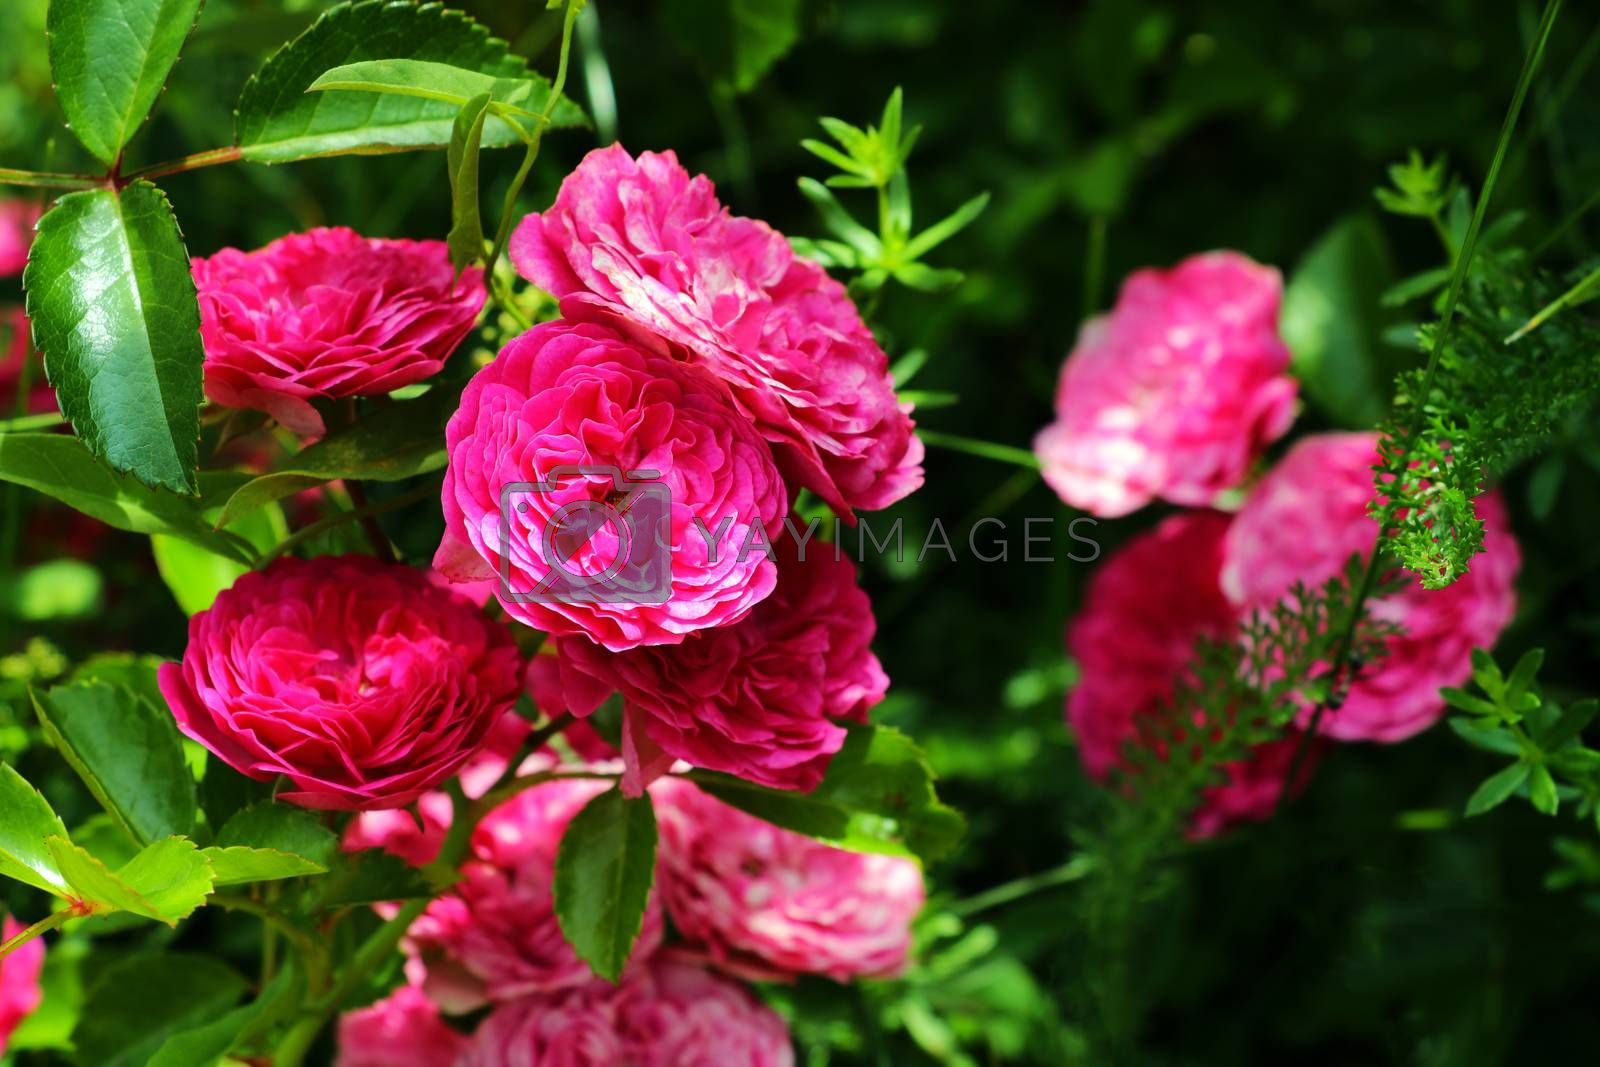 Flowering red roses in the garden, nature